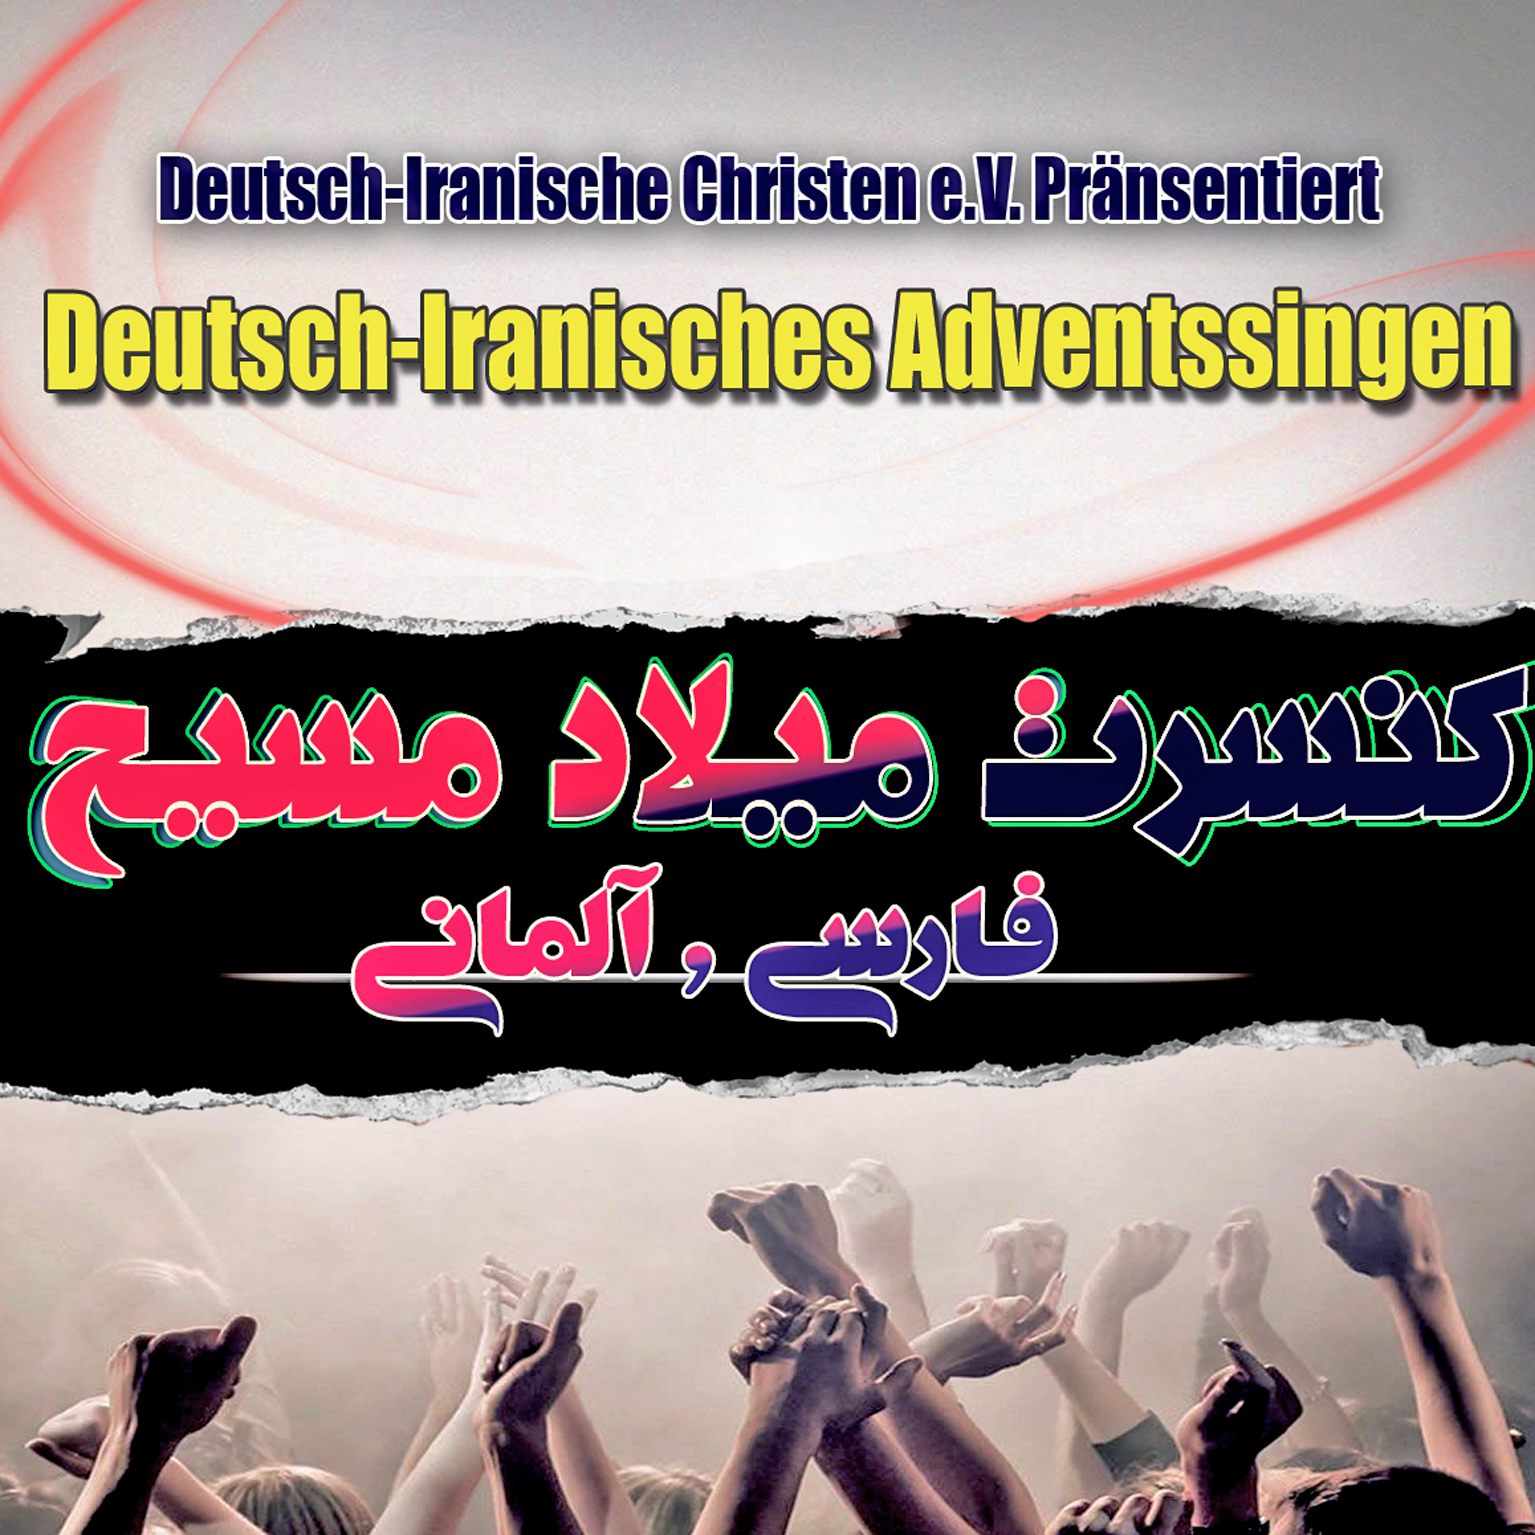 Lukas-Zentrum Paderborn: 30. November, 18.30 Uhr 2. Deutsch-Iranisches Adventssingen